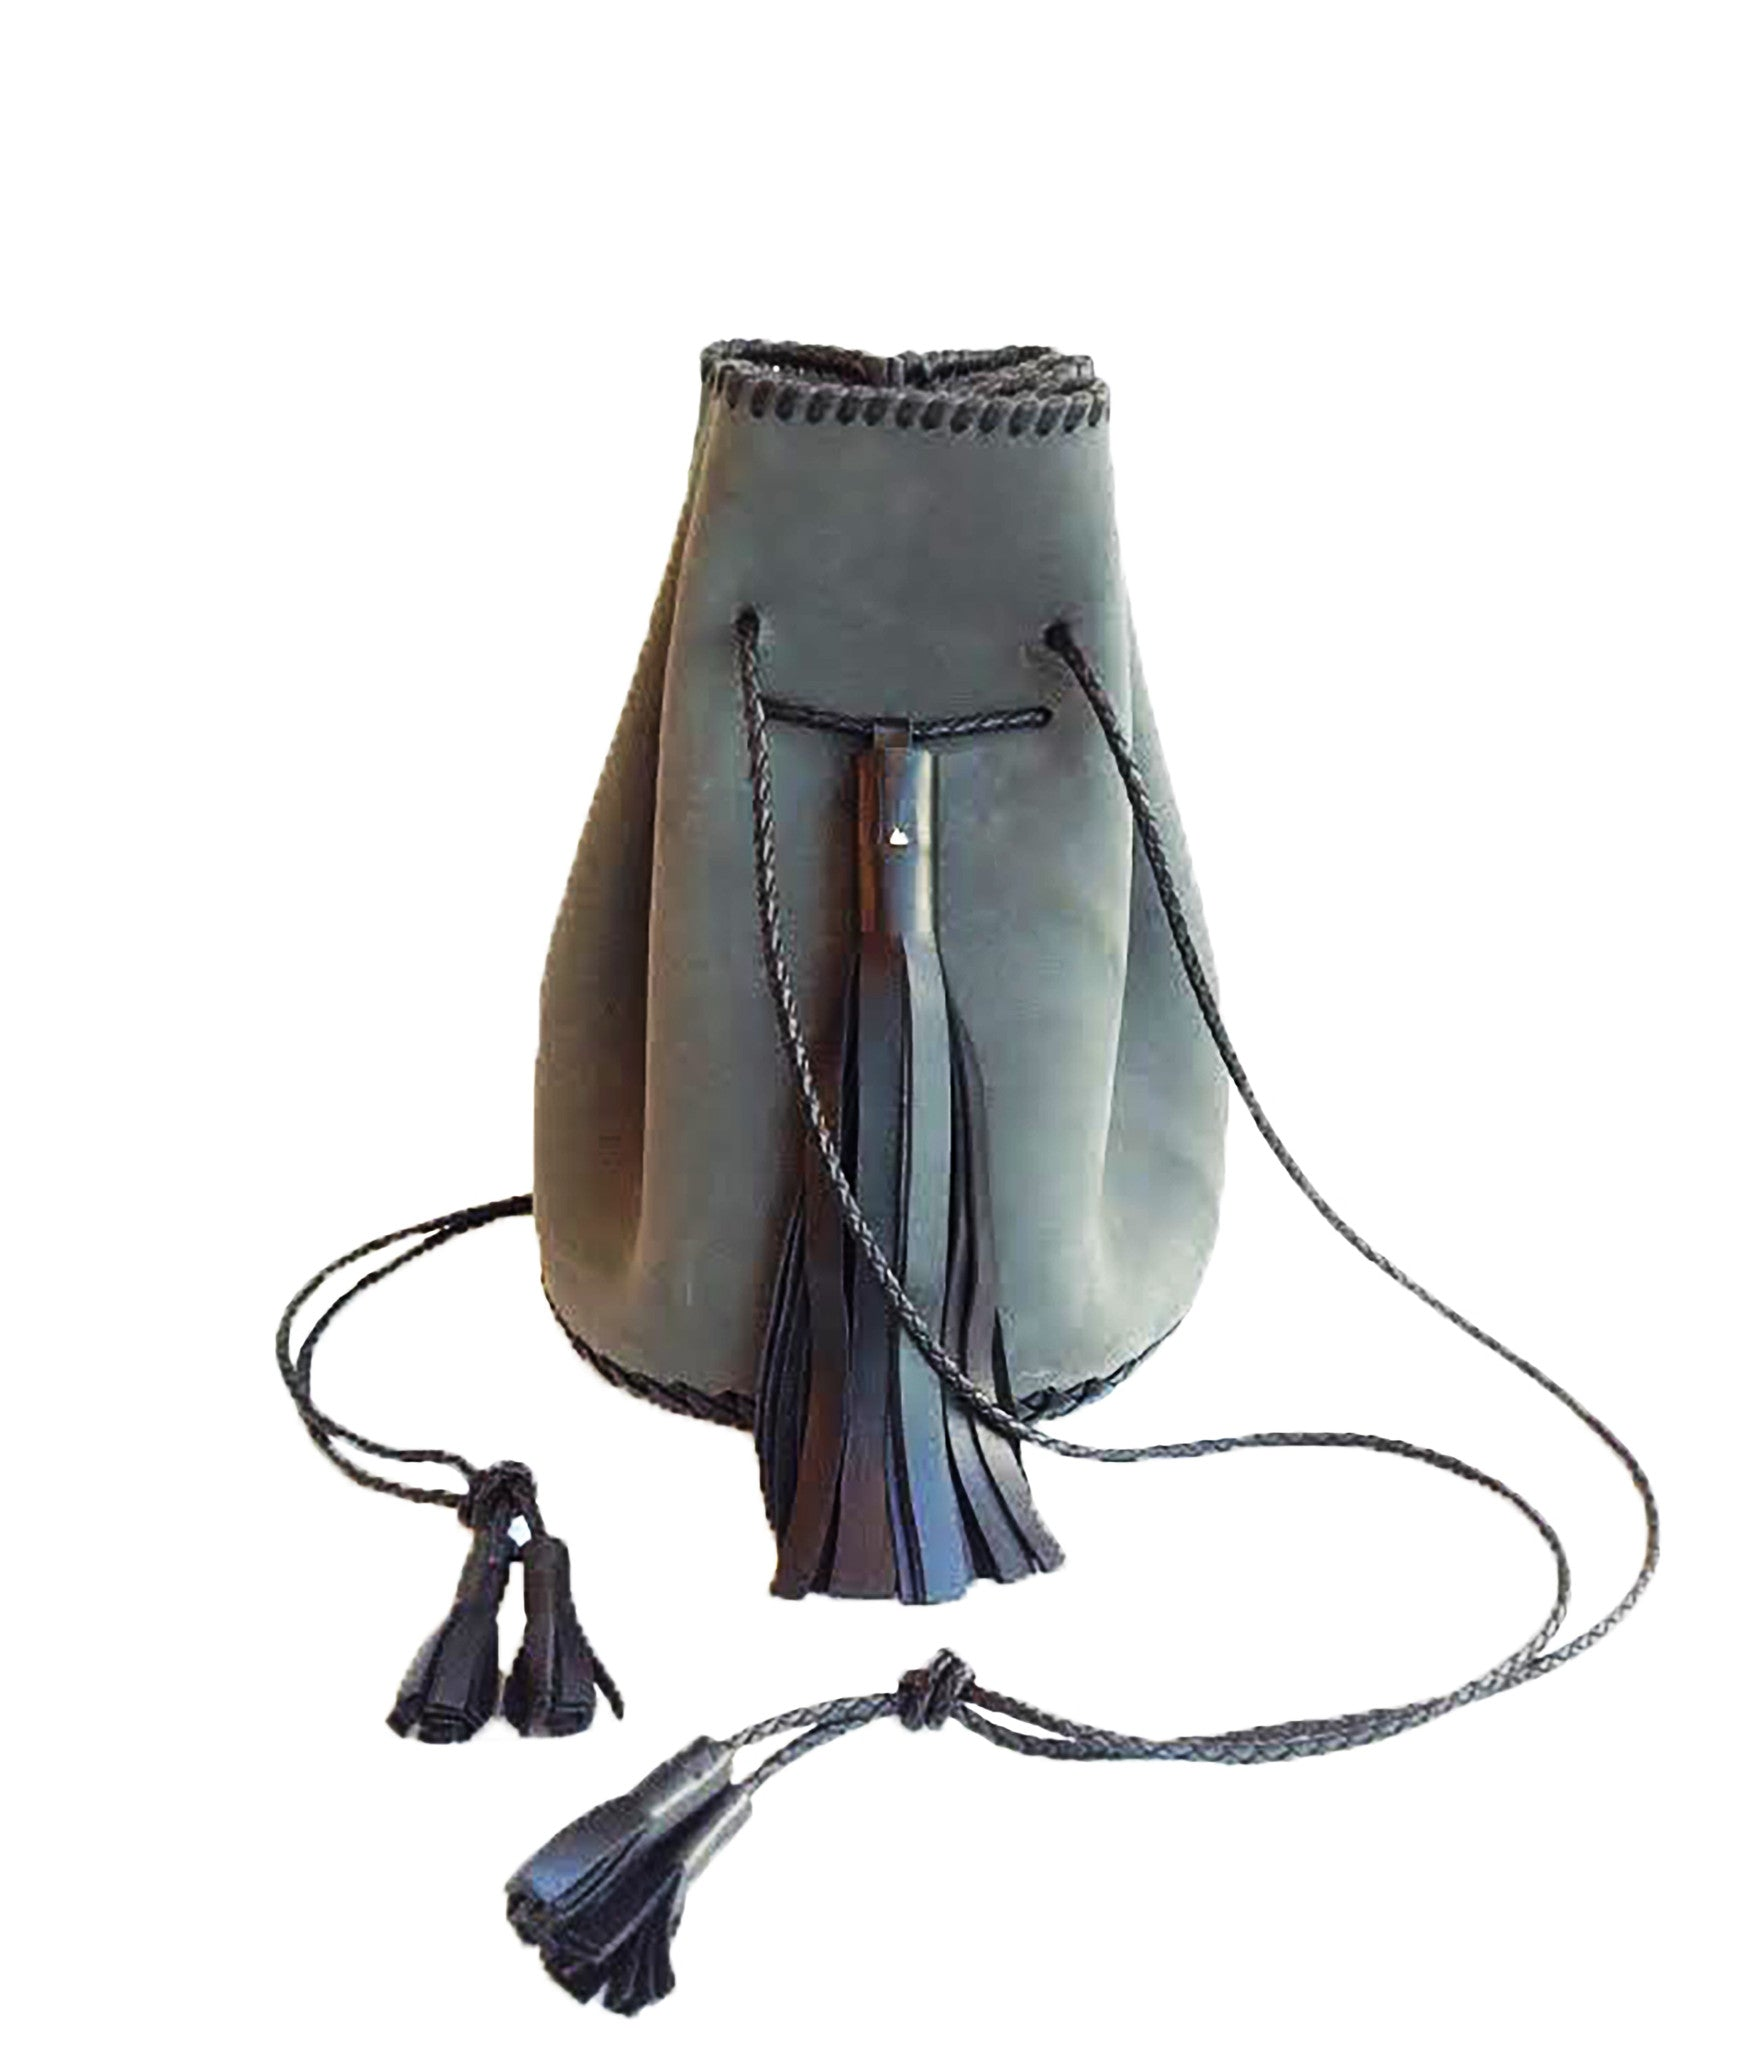 Gray Grey Whipstitch Ear Friendly Vegetable Tanned Eco Leather Bullet Bag Wendy Nichol Leather Handbag Purse Designer Handmade in NYC New York City Bucket Bag Drawstring Pouch Large Fringe Tassel